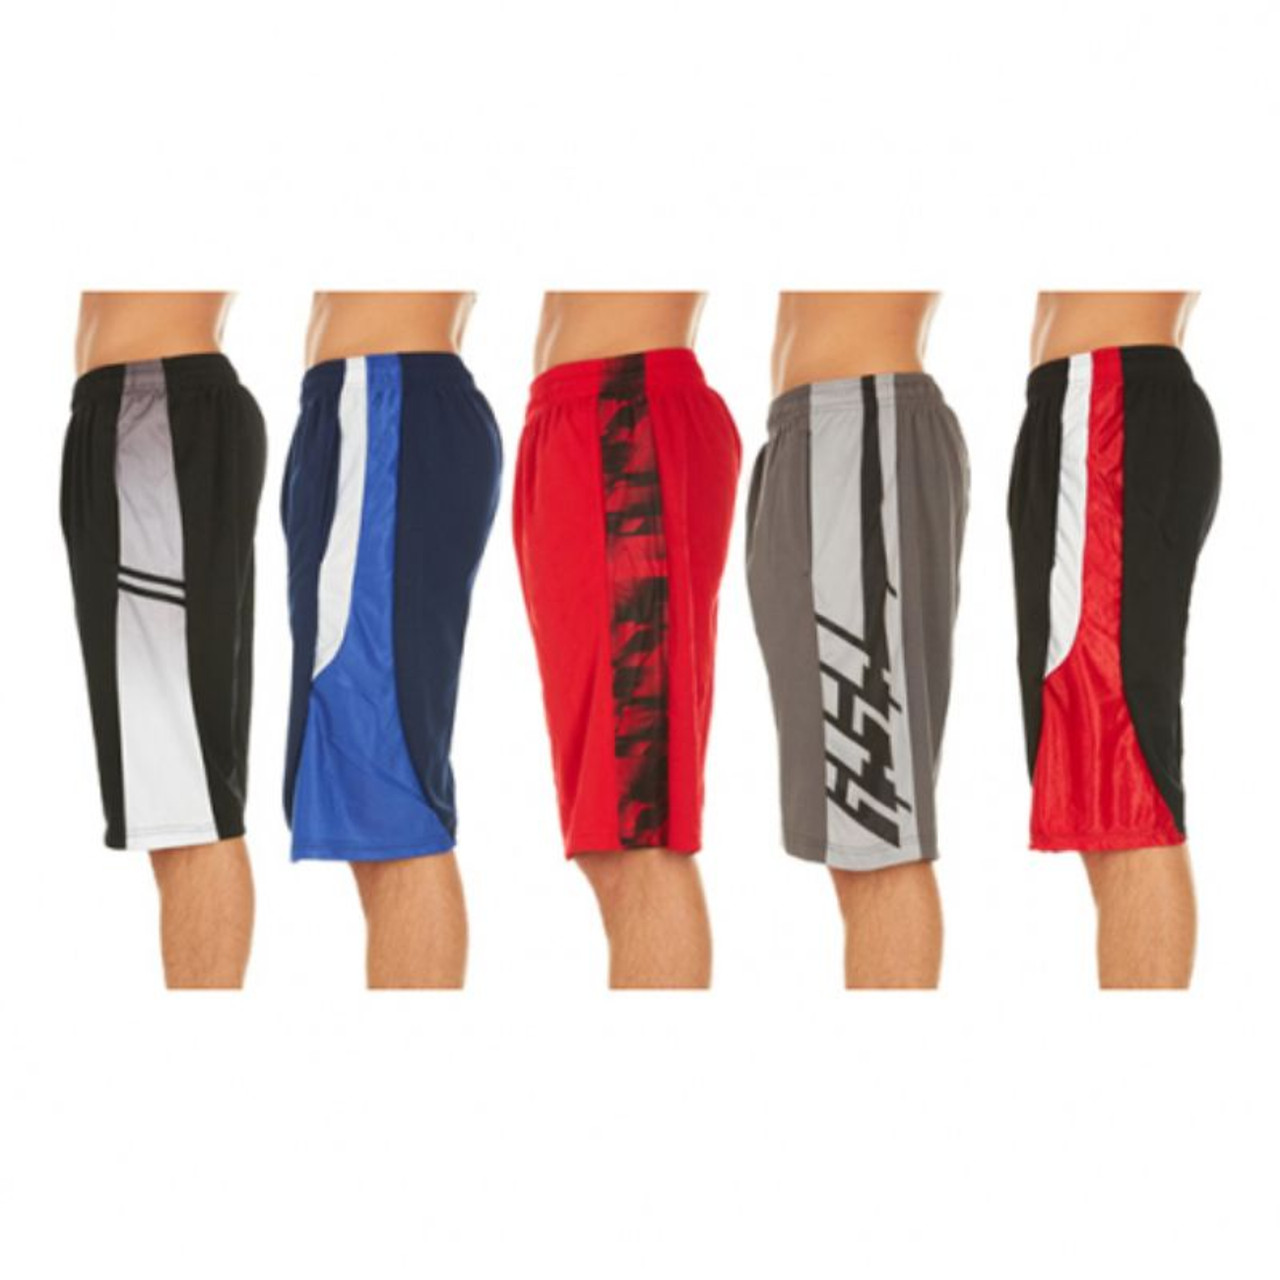 Assorted Men's Active Athletic Performance Shorts - 5 Pack